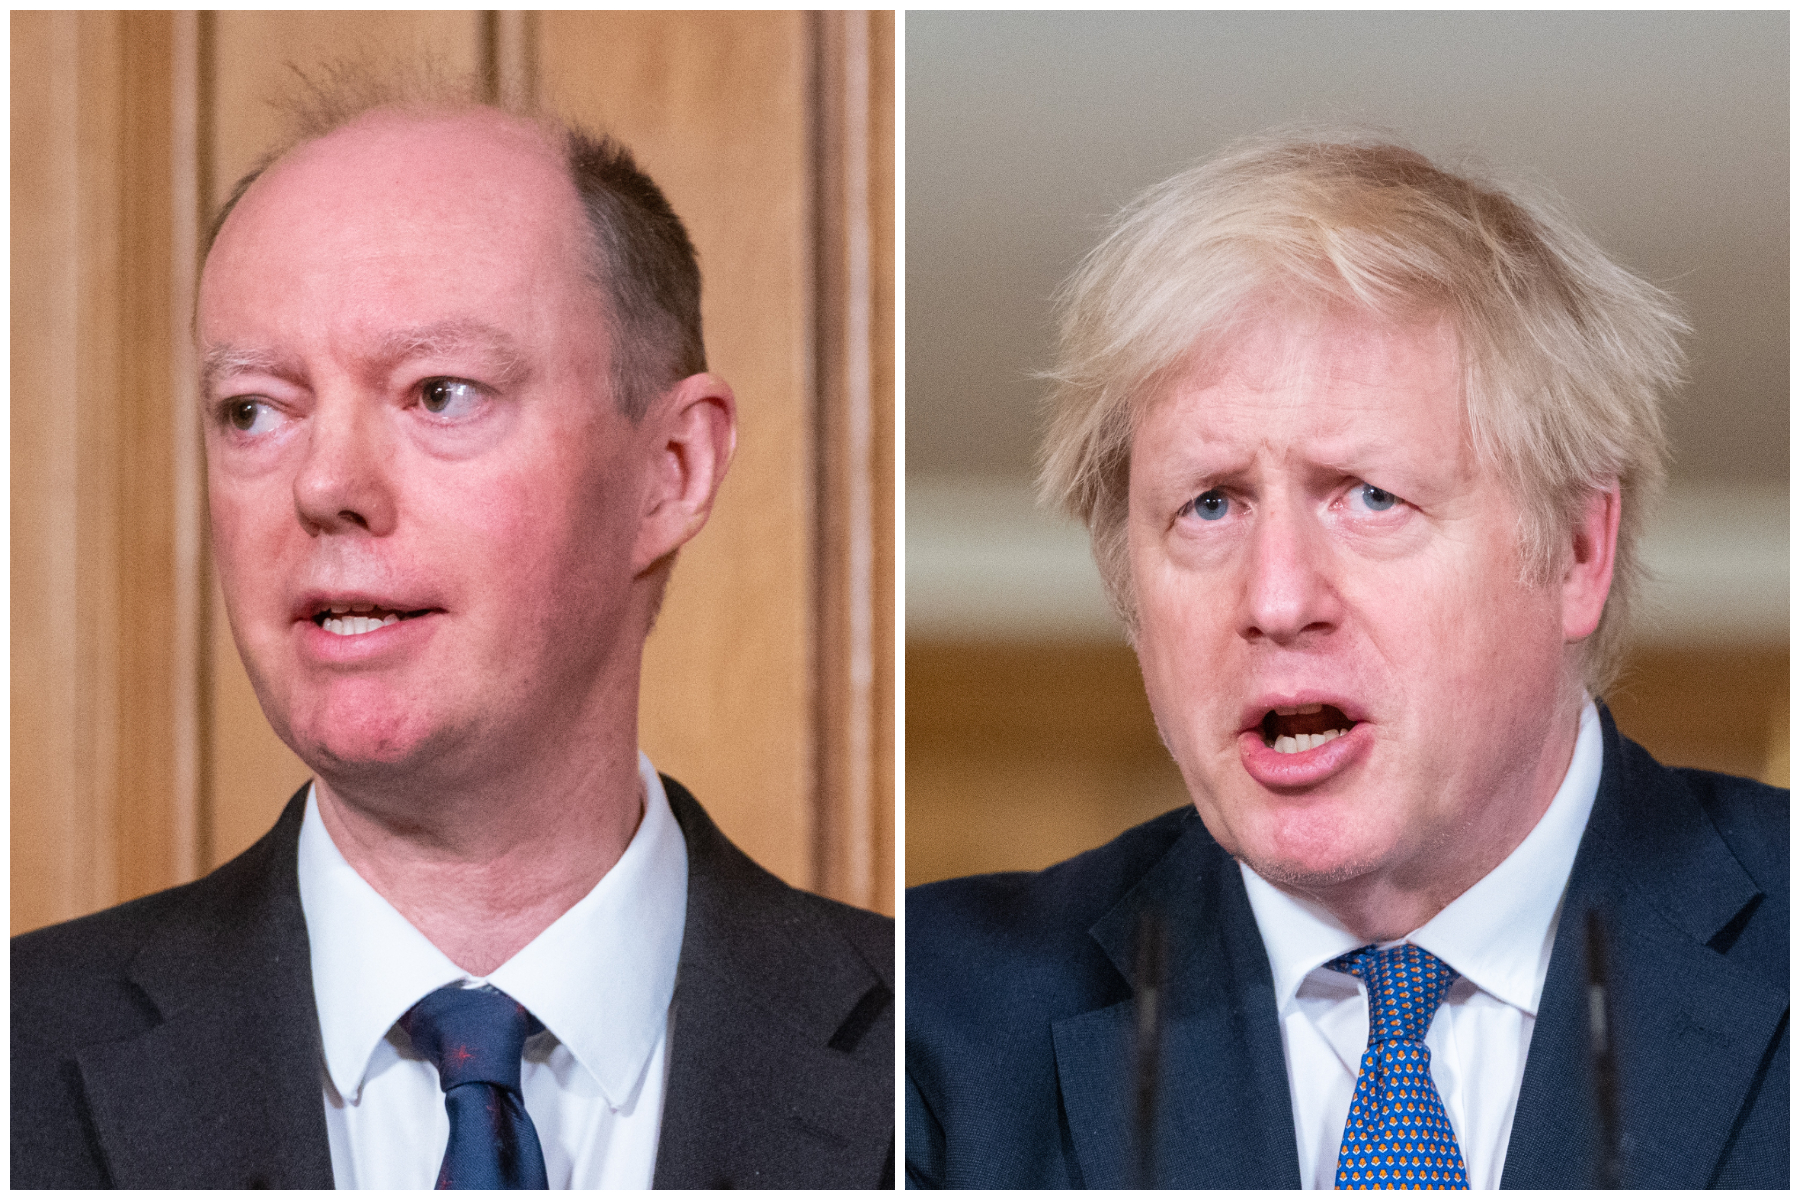 Chris Whitty calls out Boris Johnson after PM misquoted him over date UK will be close to normal